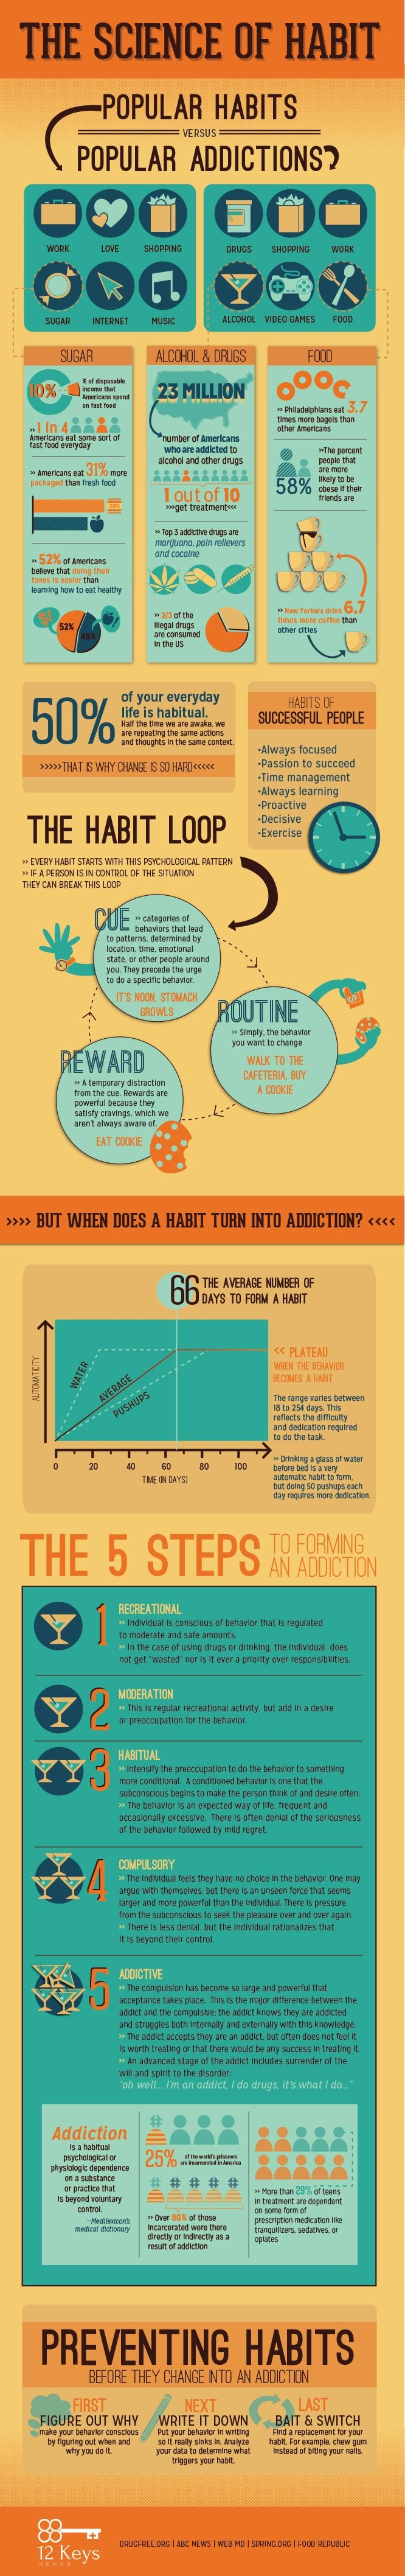 The Science Of Habit: Popular Habits Vs. Popular Addictions #infographic